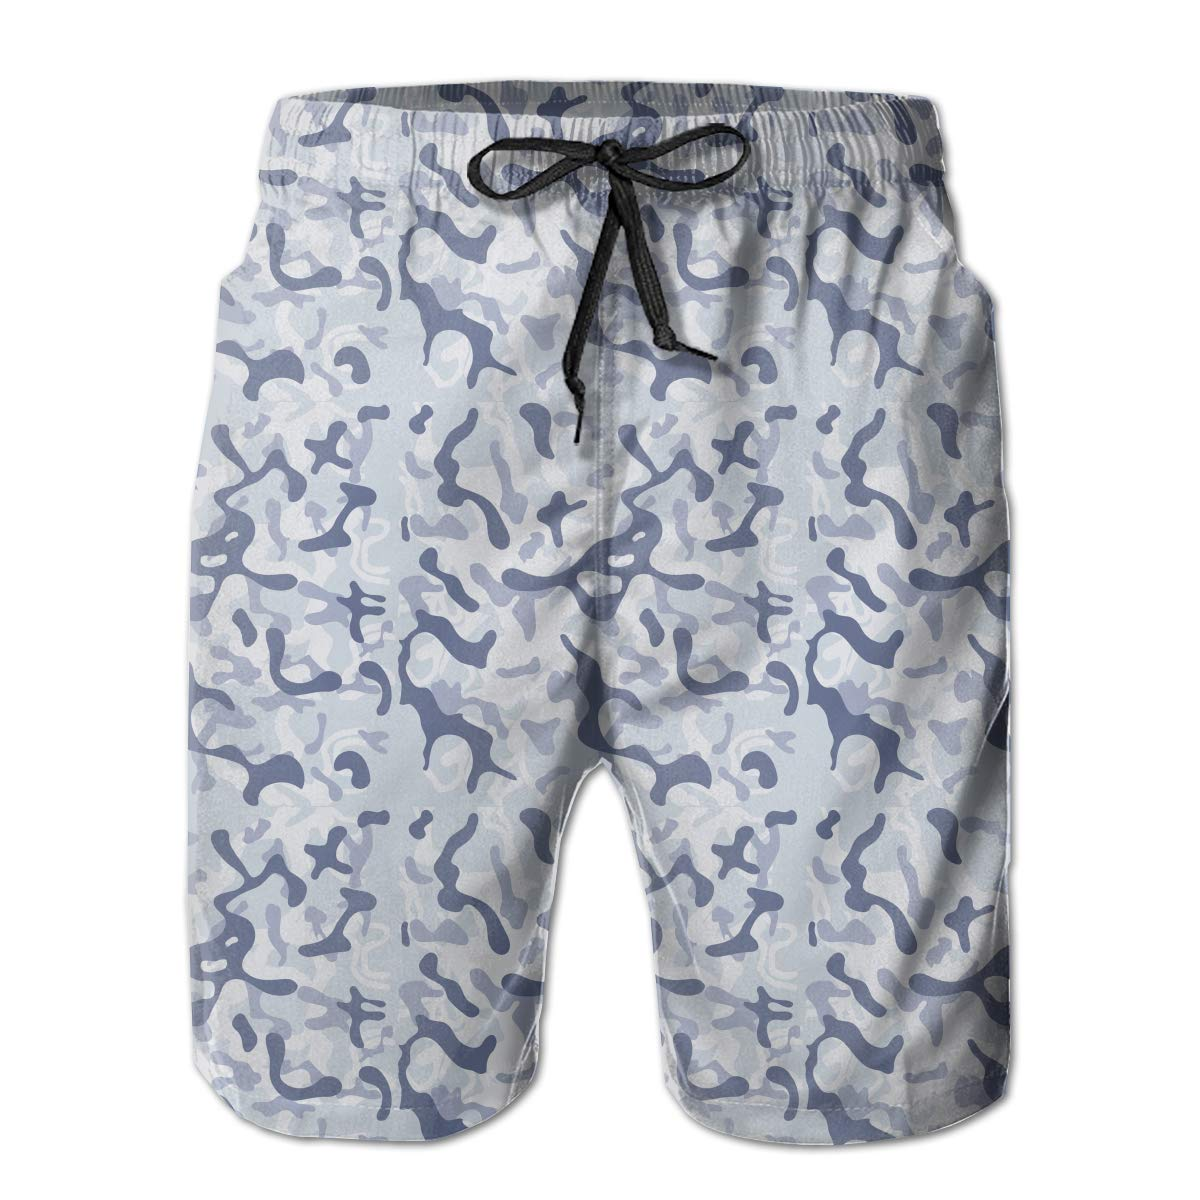 Fashion Swim Trunks Mens Board Shorts Camo Joggers Women Purple Quick Dry Shorts